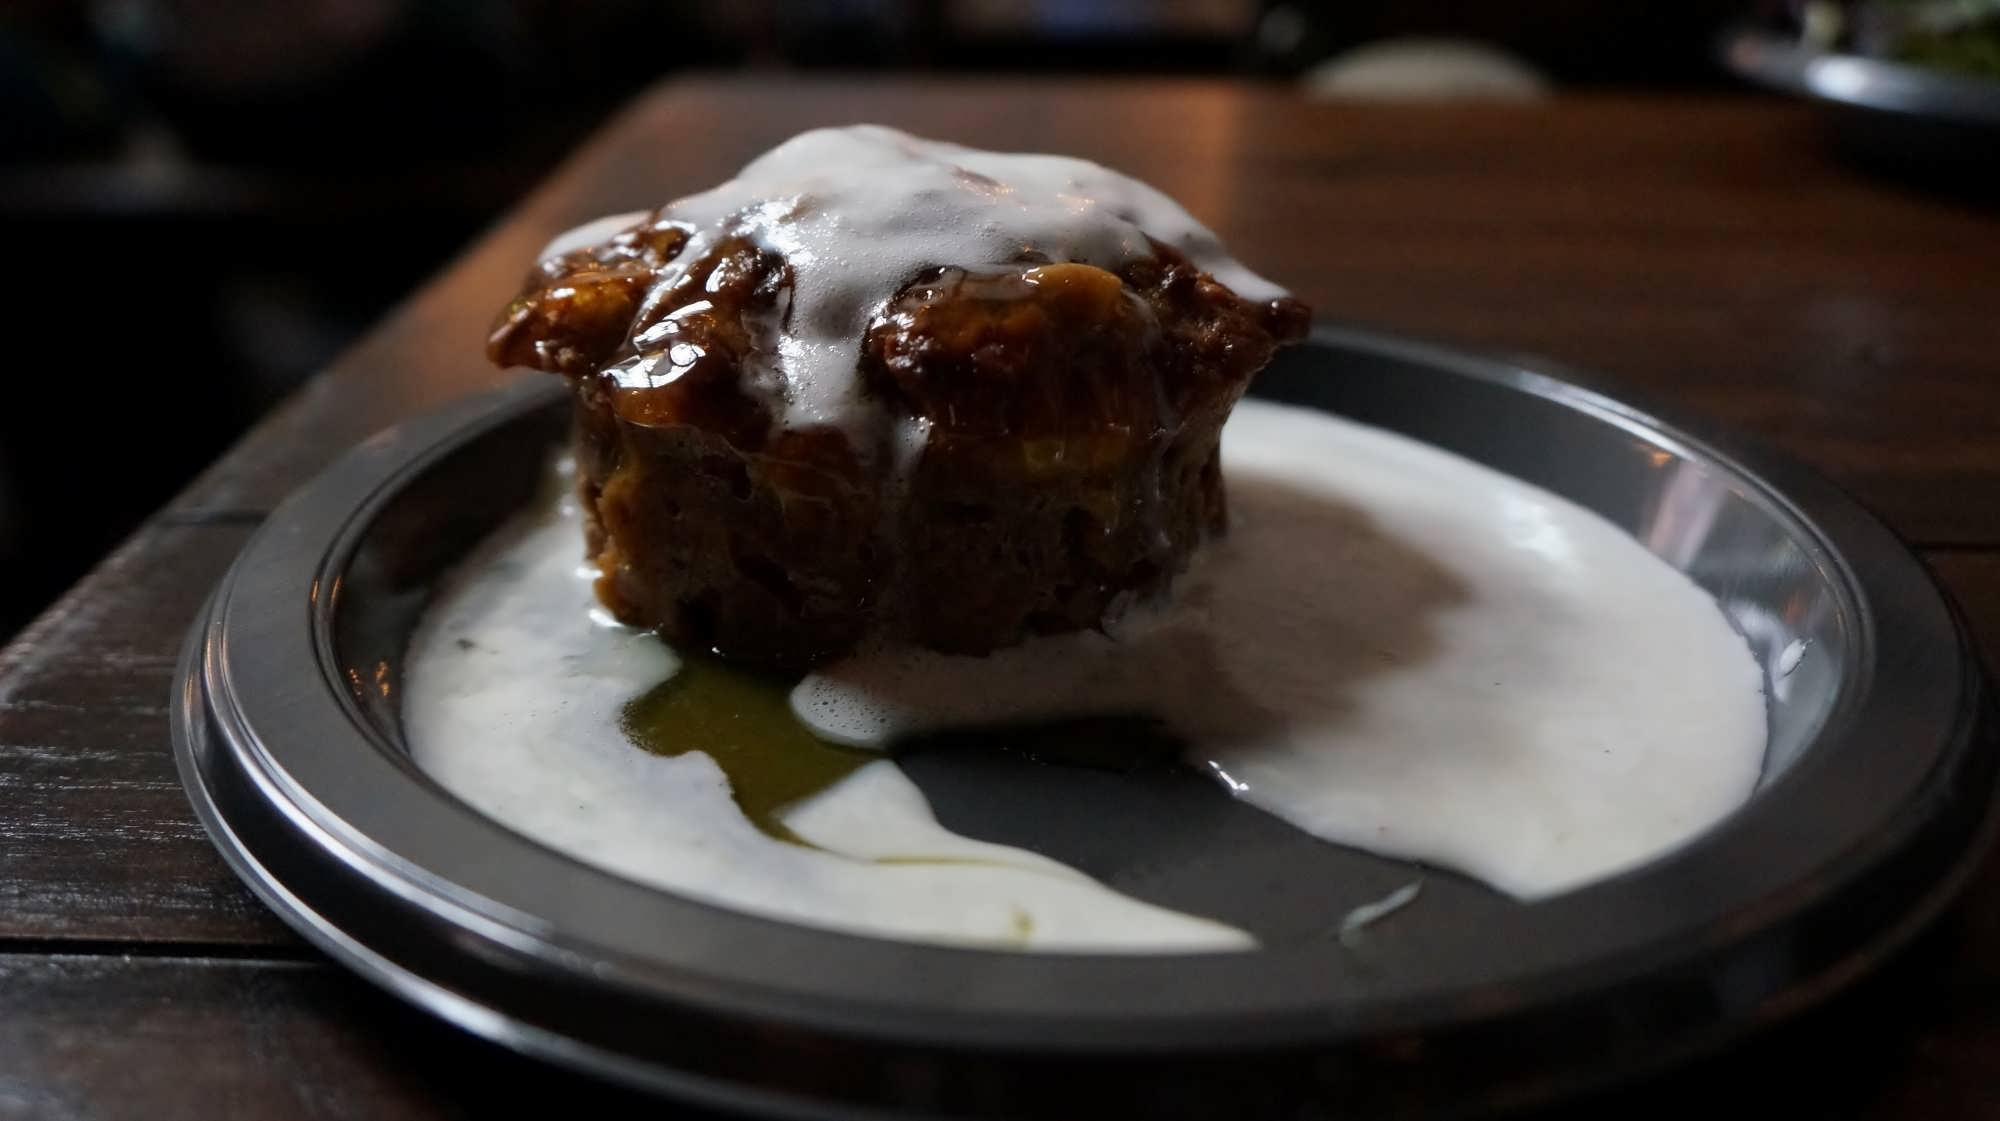 Sticky Toffee Pudding at the Leaky Cauldron